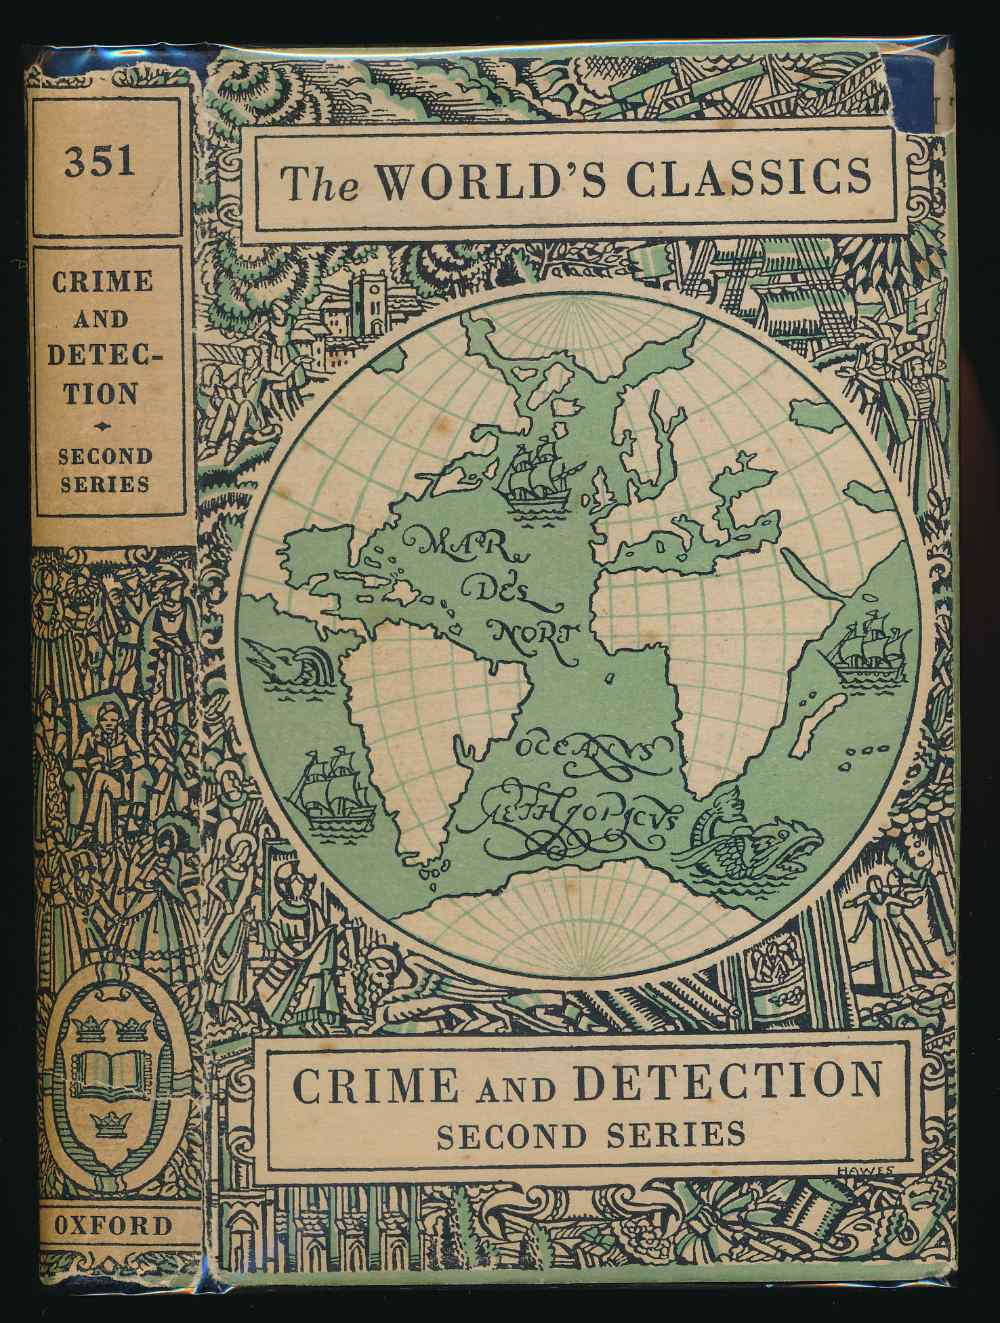 Crime and detection (second series)